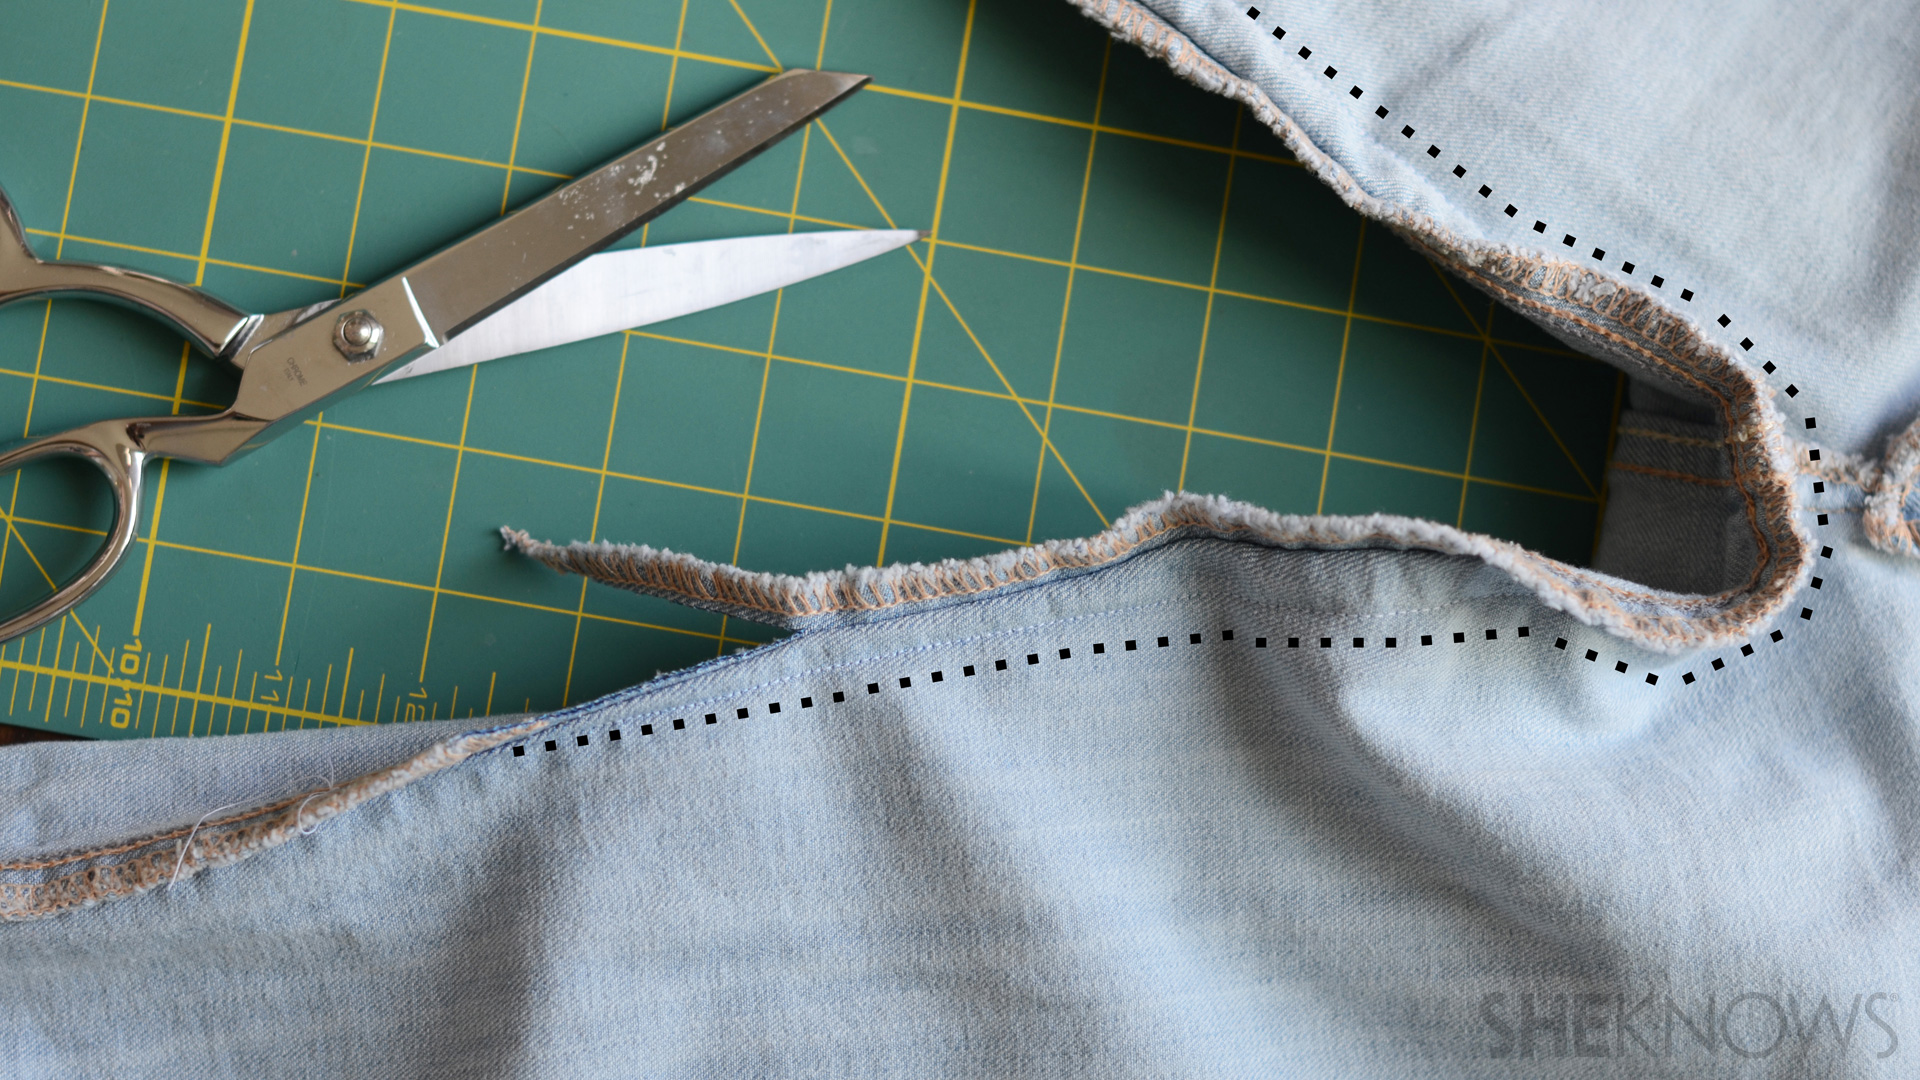 Cut the excess jeans along the new hem line